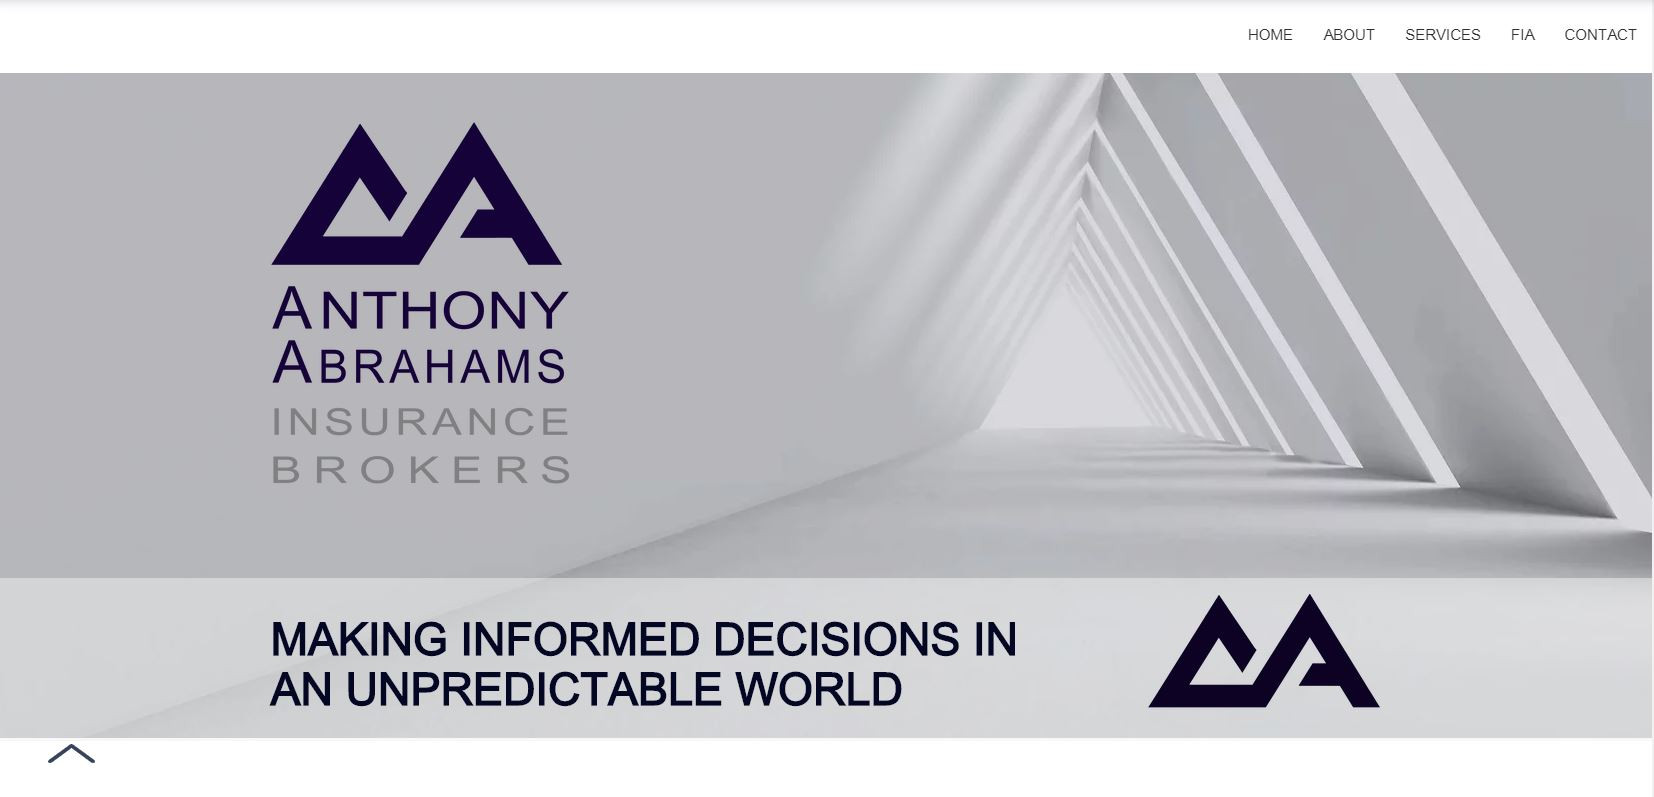 Anthony Abrahams Insurance Brokers